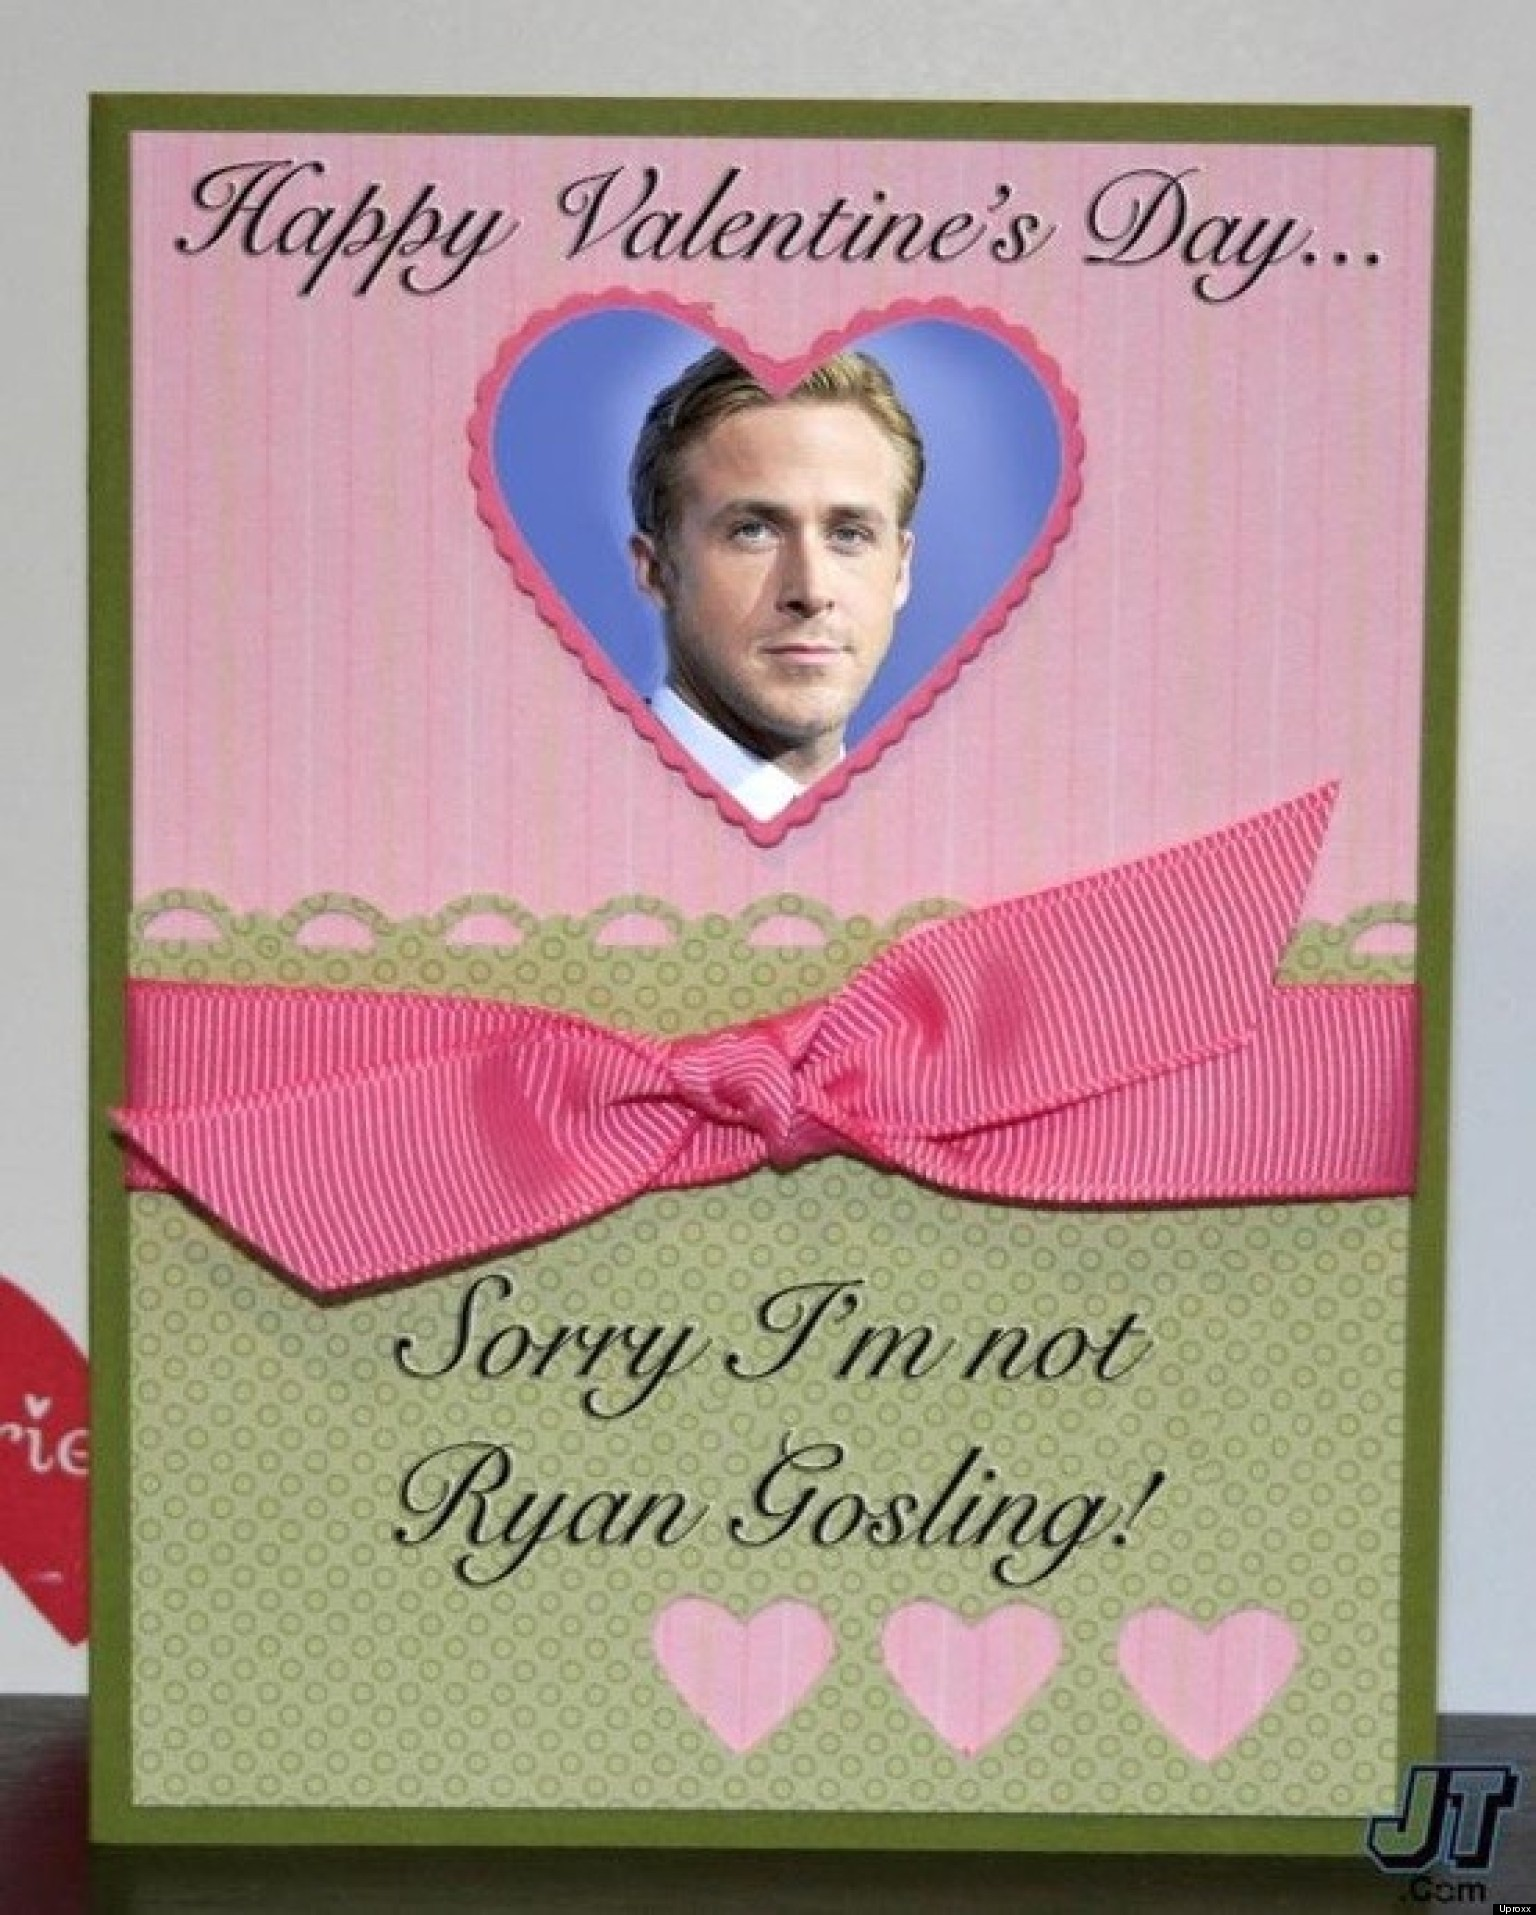 25 Funny Valentines Day Cards PHOTOS – Valentine Cards Funny